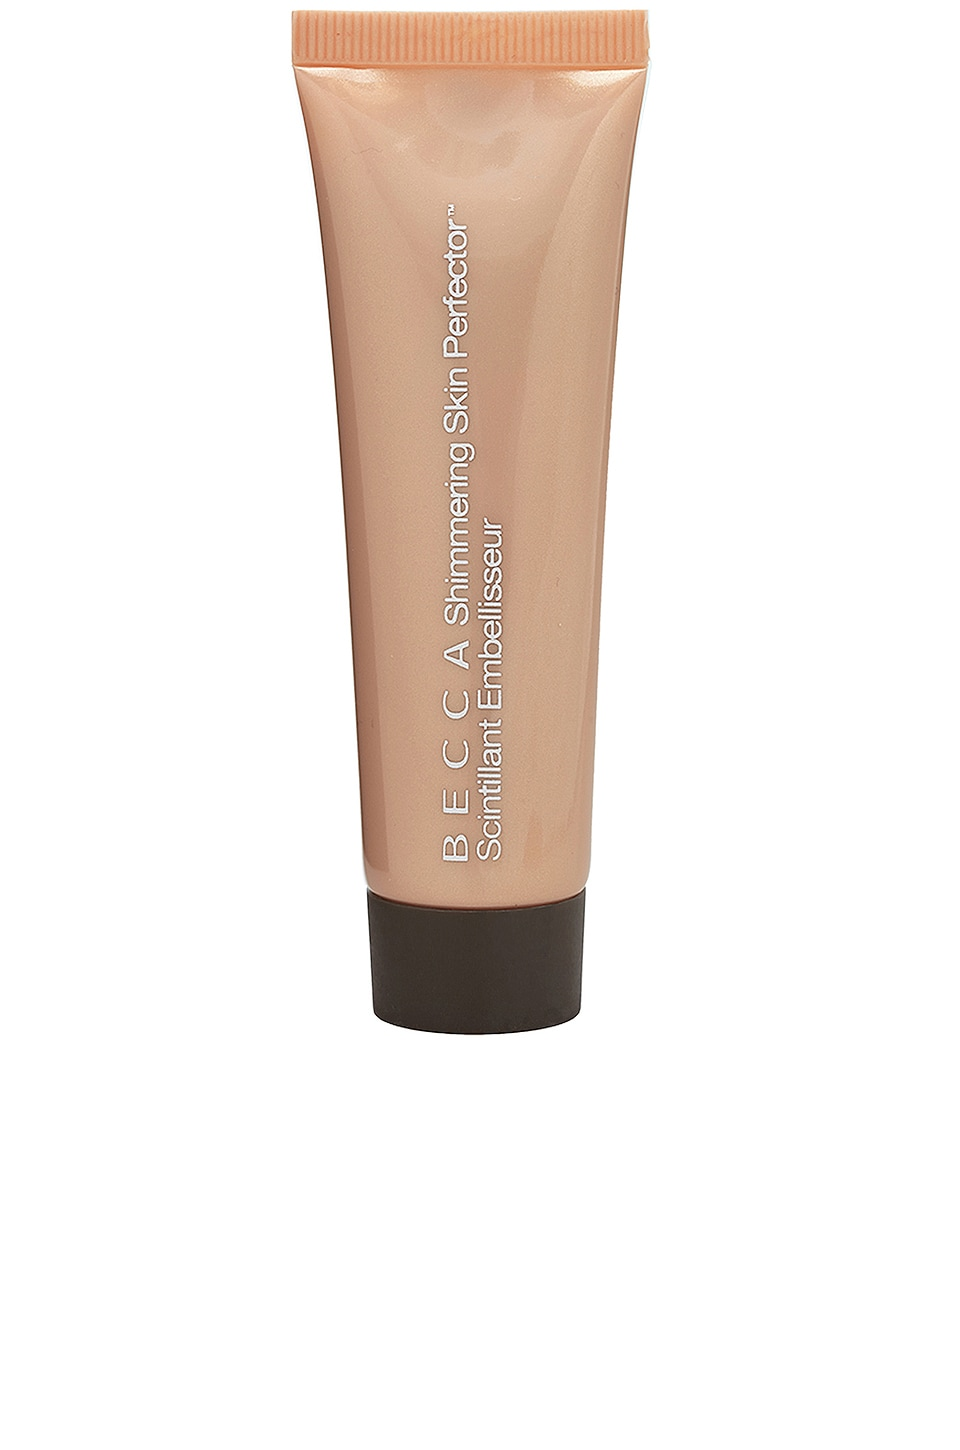 BECCA Travel Shimmering Skin Perfector Liquid in Opal